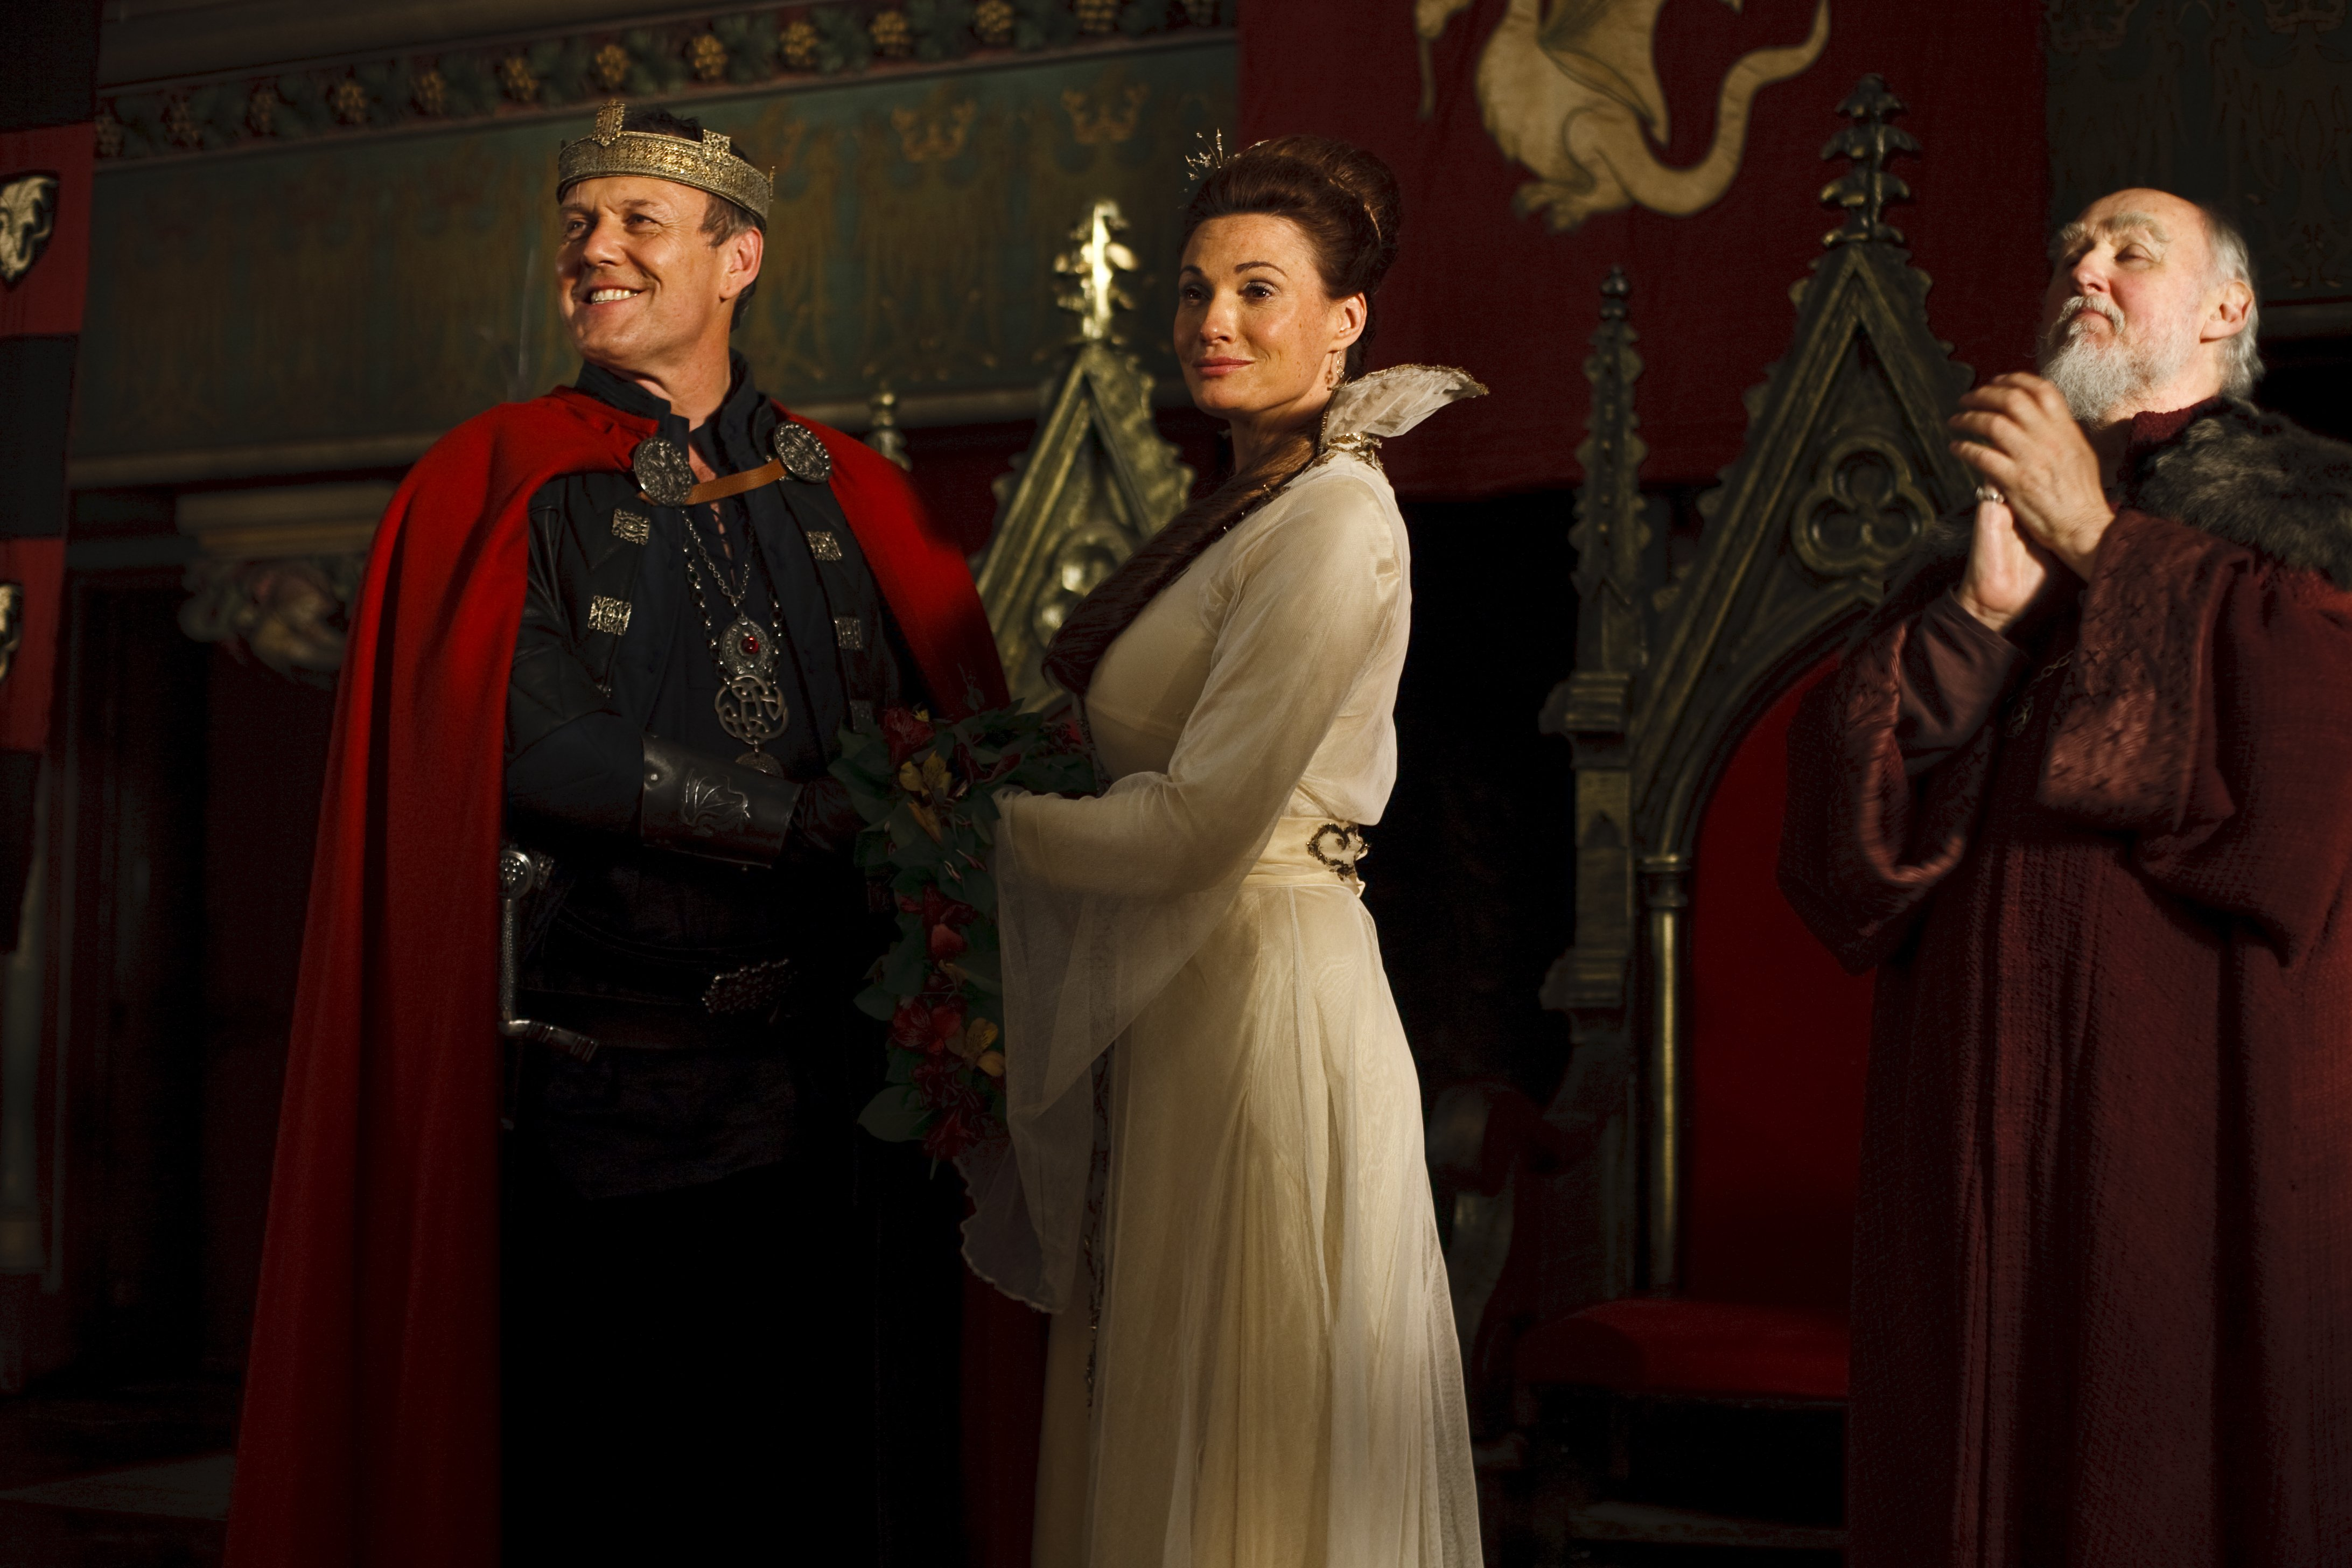 Wedding of King Uther and Lady Catrina